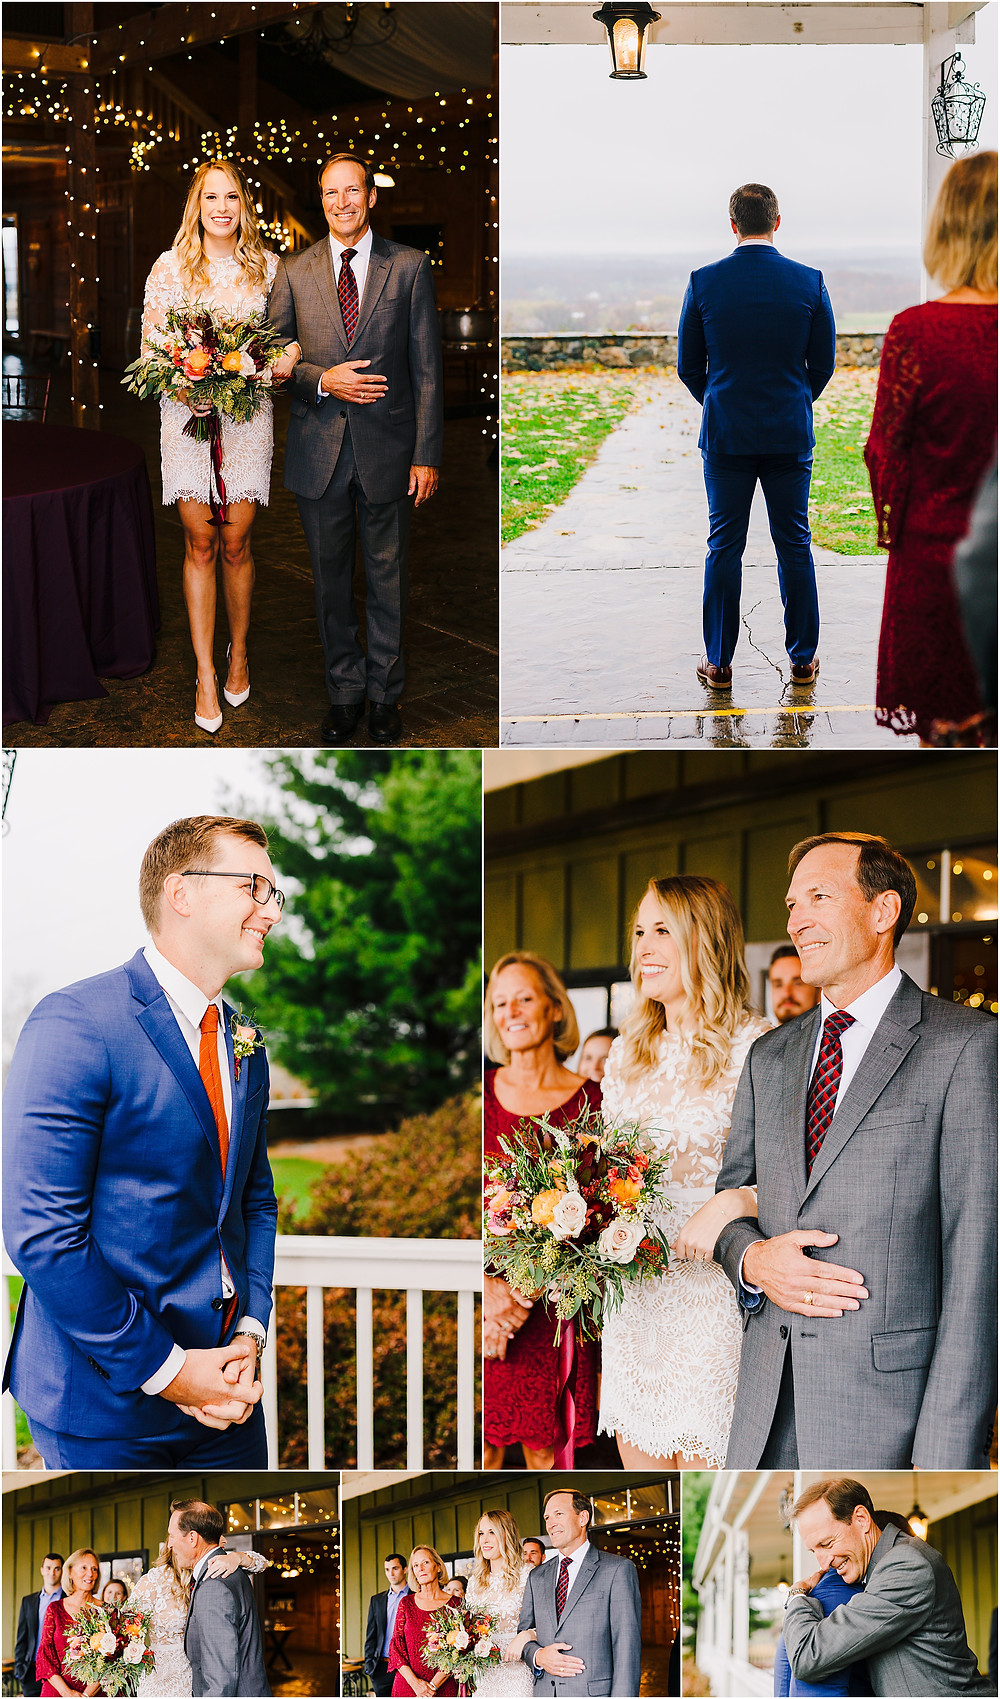 Maryland Elopement Photographer Bluemont Vinyard Elopement Ceremony